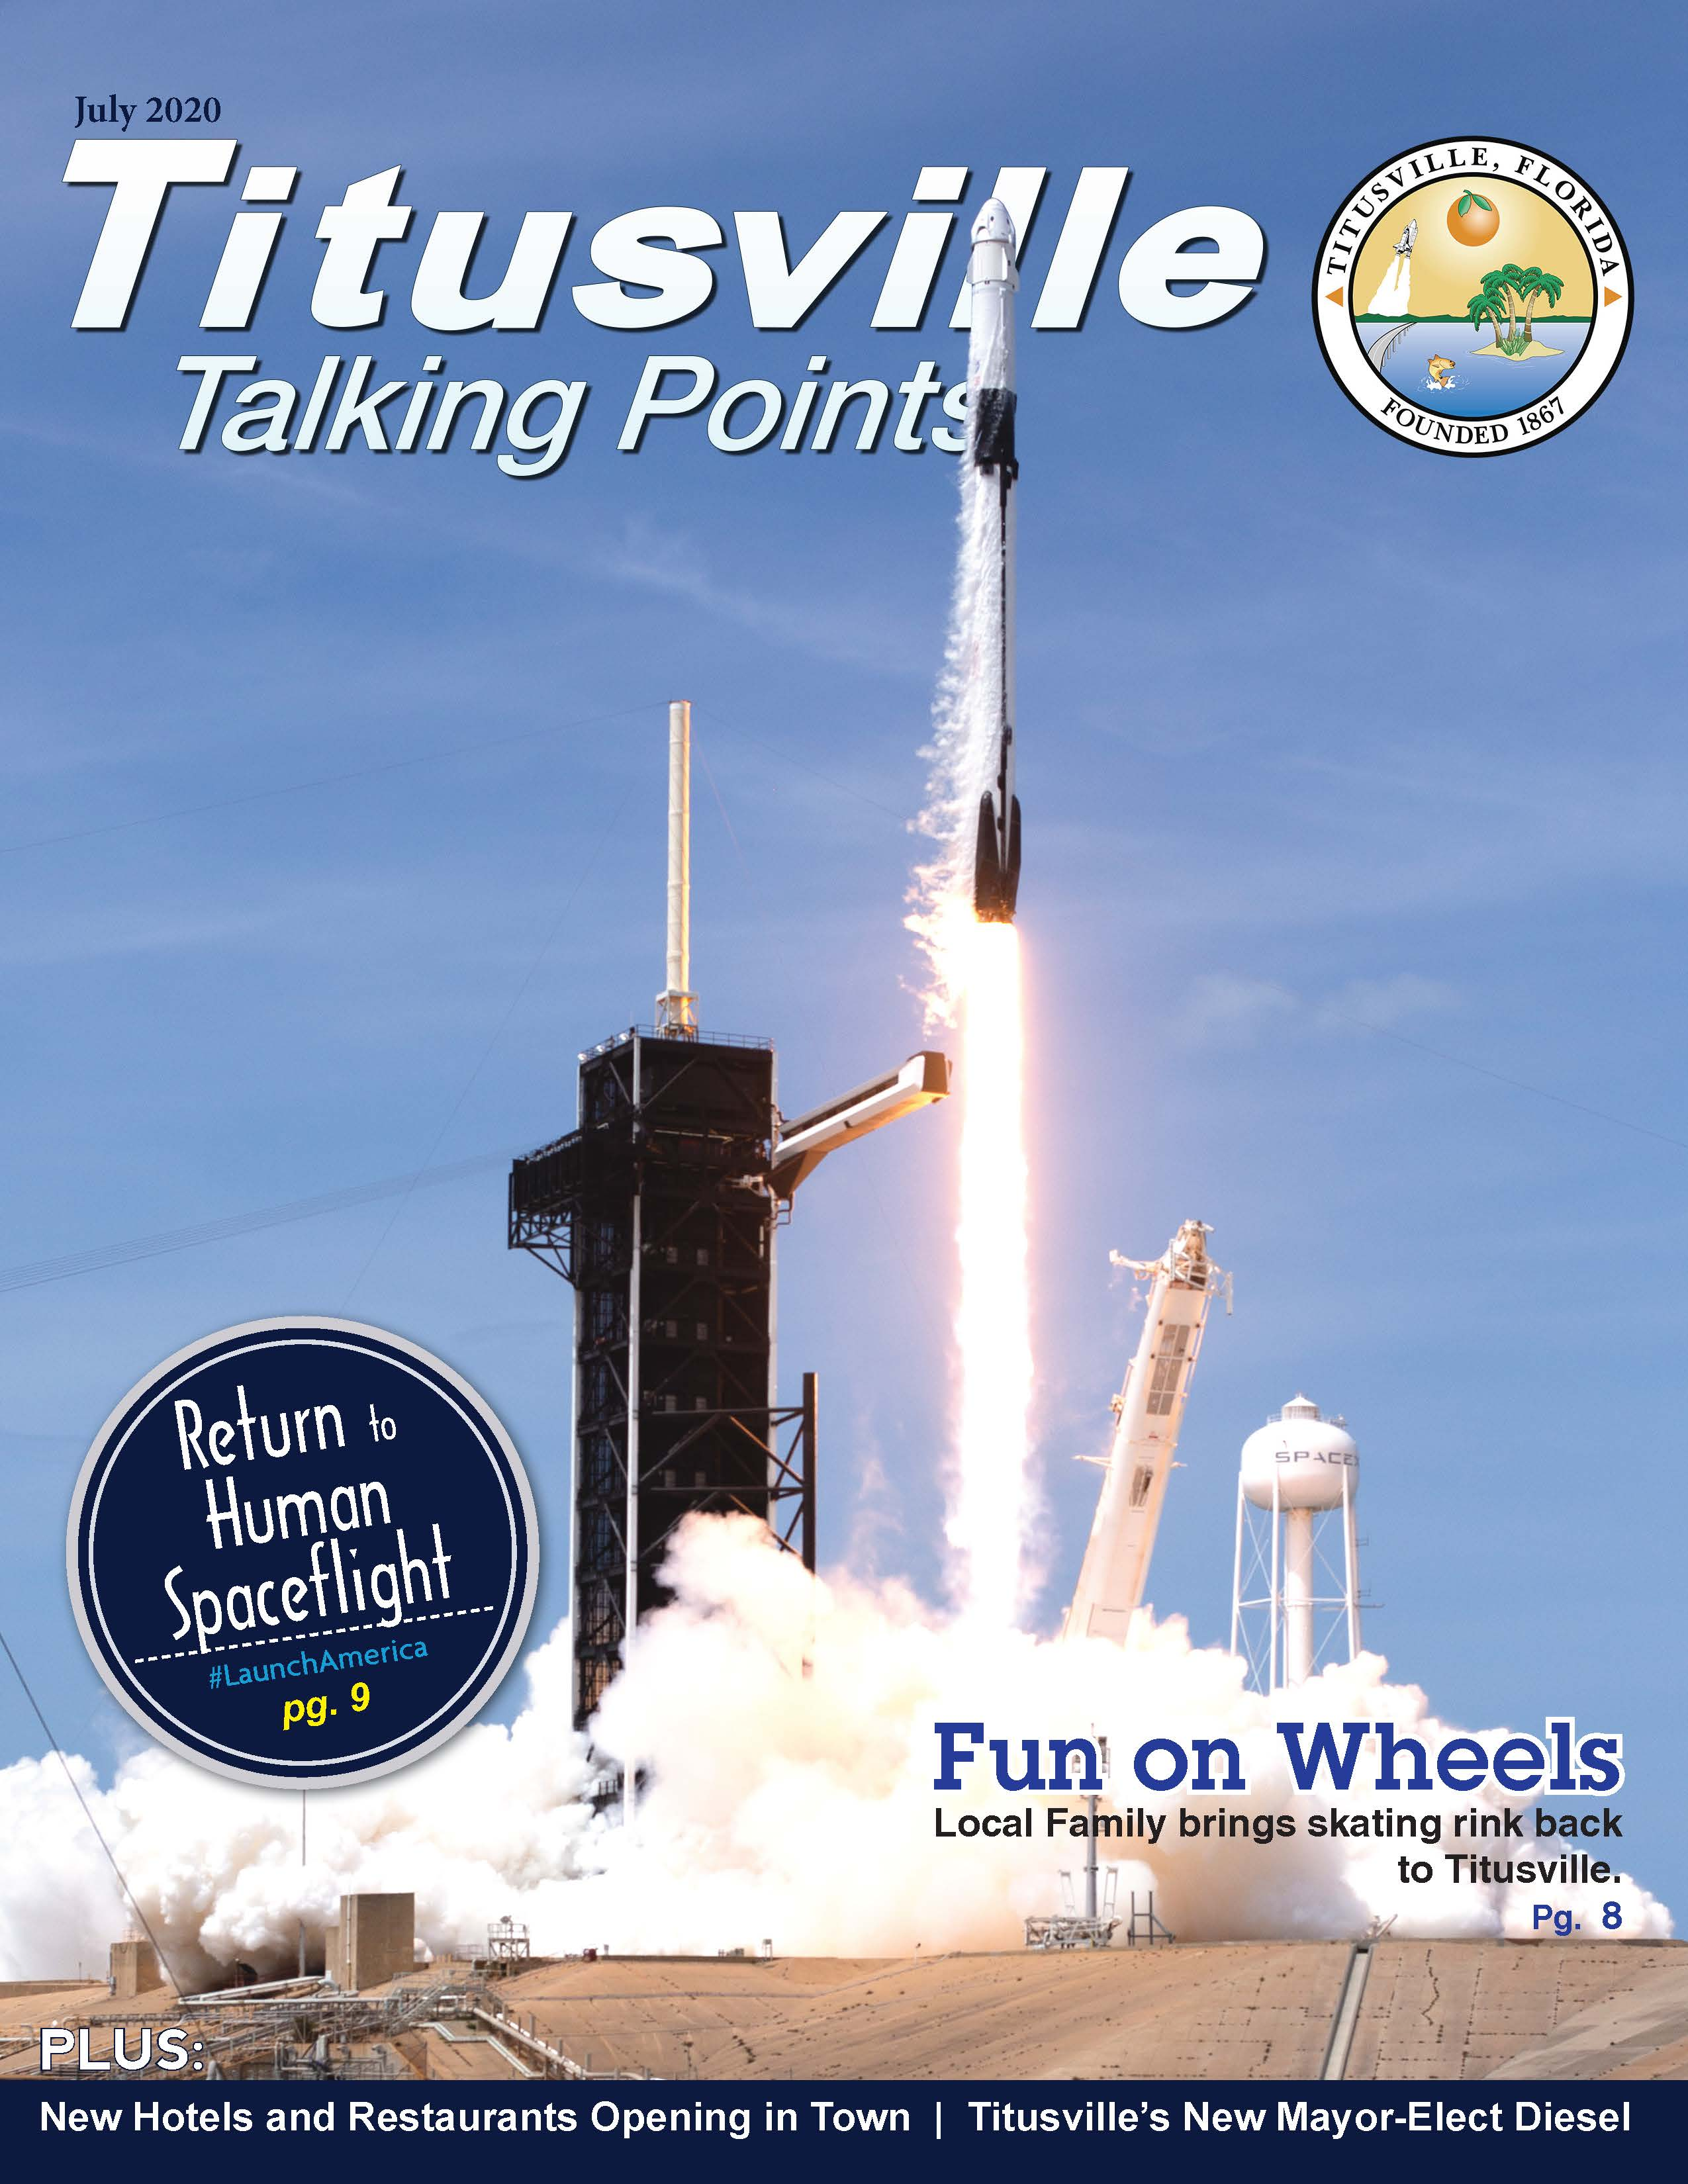 Cover of Titusville Talking Points, July 2020. Rocket Launch photo.